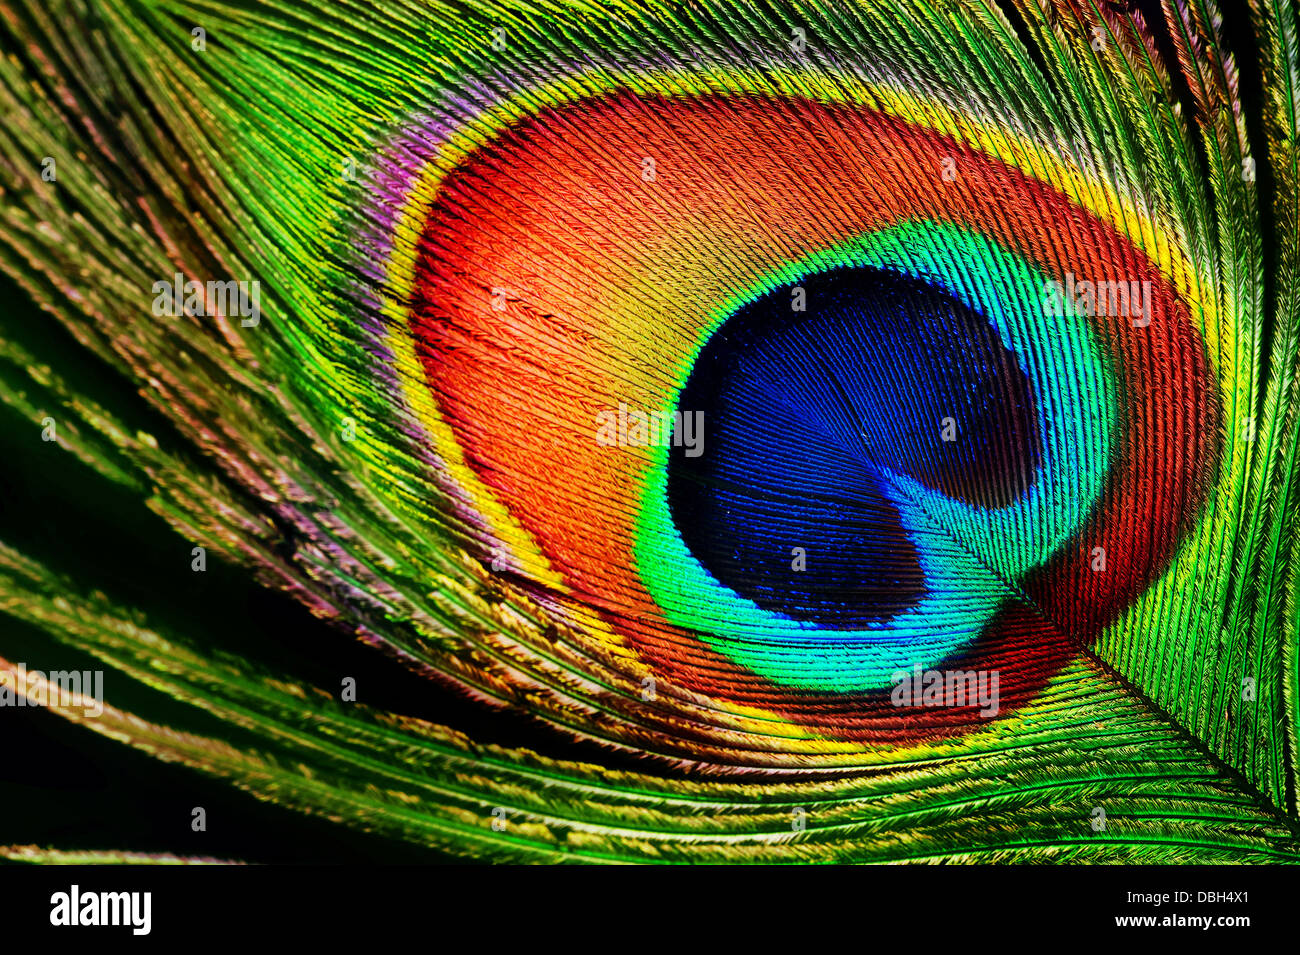 Peacock Feather - Stock Image